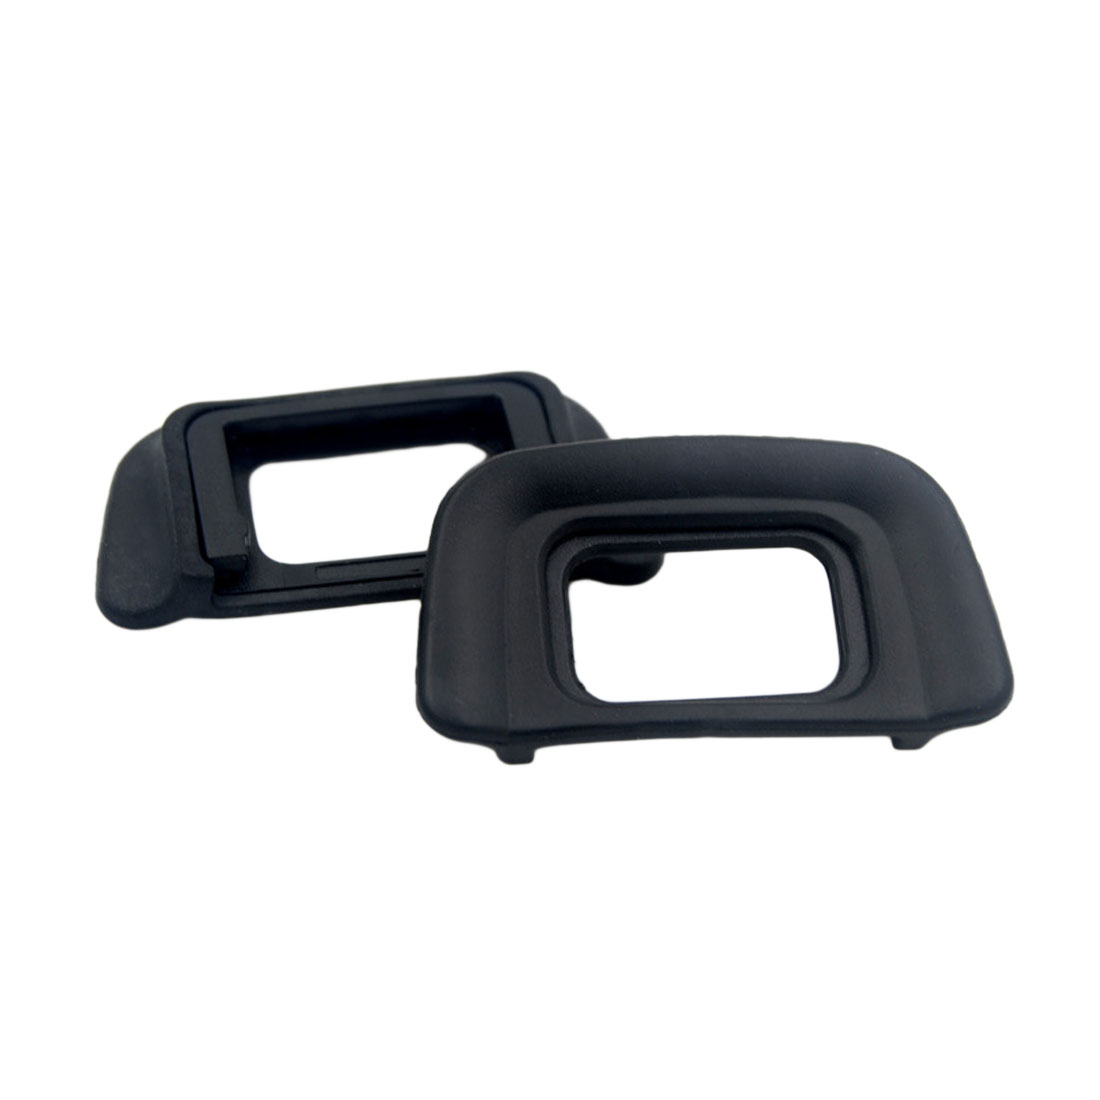 Image 3 - HONGDAK High Quality 2pcs DK 20 Rubber Eye Cup Eyepiece Eyecup For NIKON D5100 D3100 D3000 D50 D60 D70S D3100 D3200 D5200 D3300-in Photo Studio Accessories from Consumer Electronics